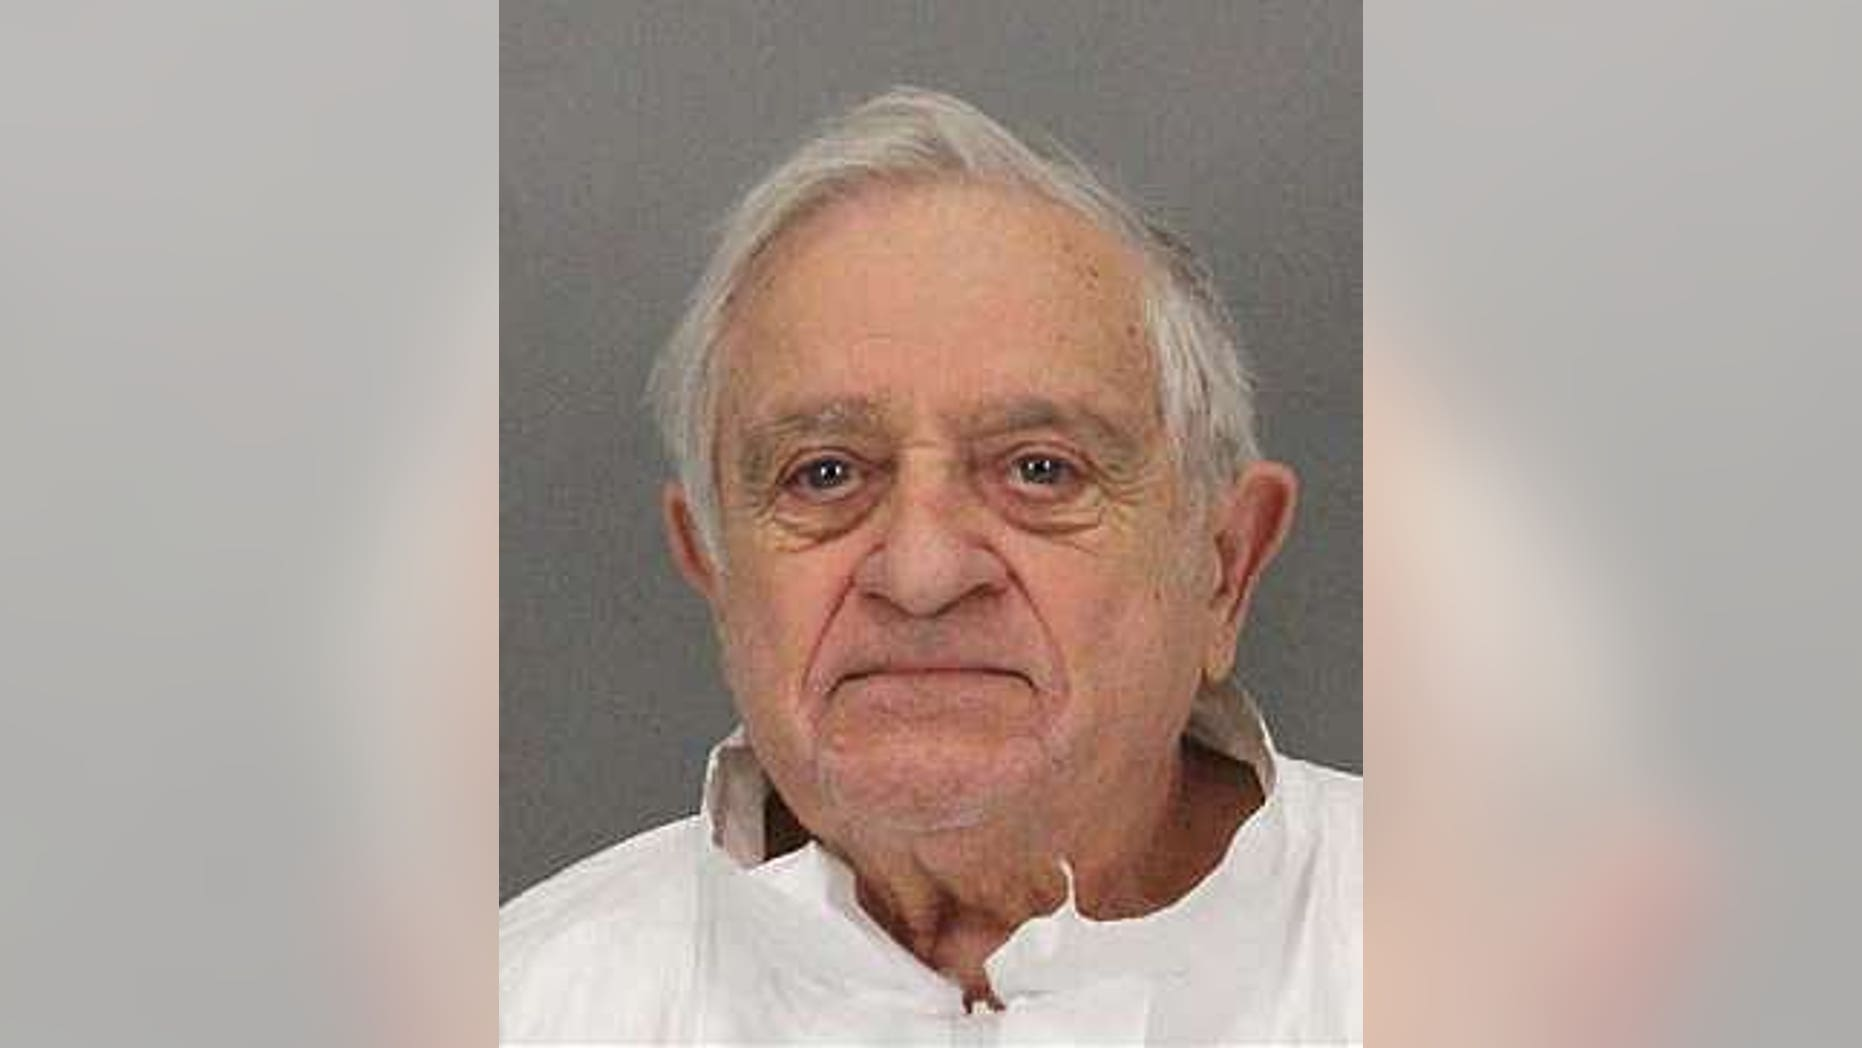 Anthony Aiello, 90, was arrested on Tuesday on suspicion of murdering his stepdaughter.